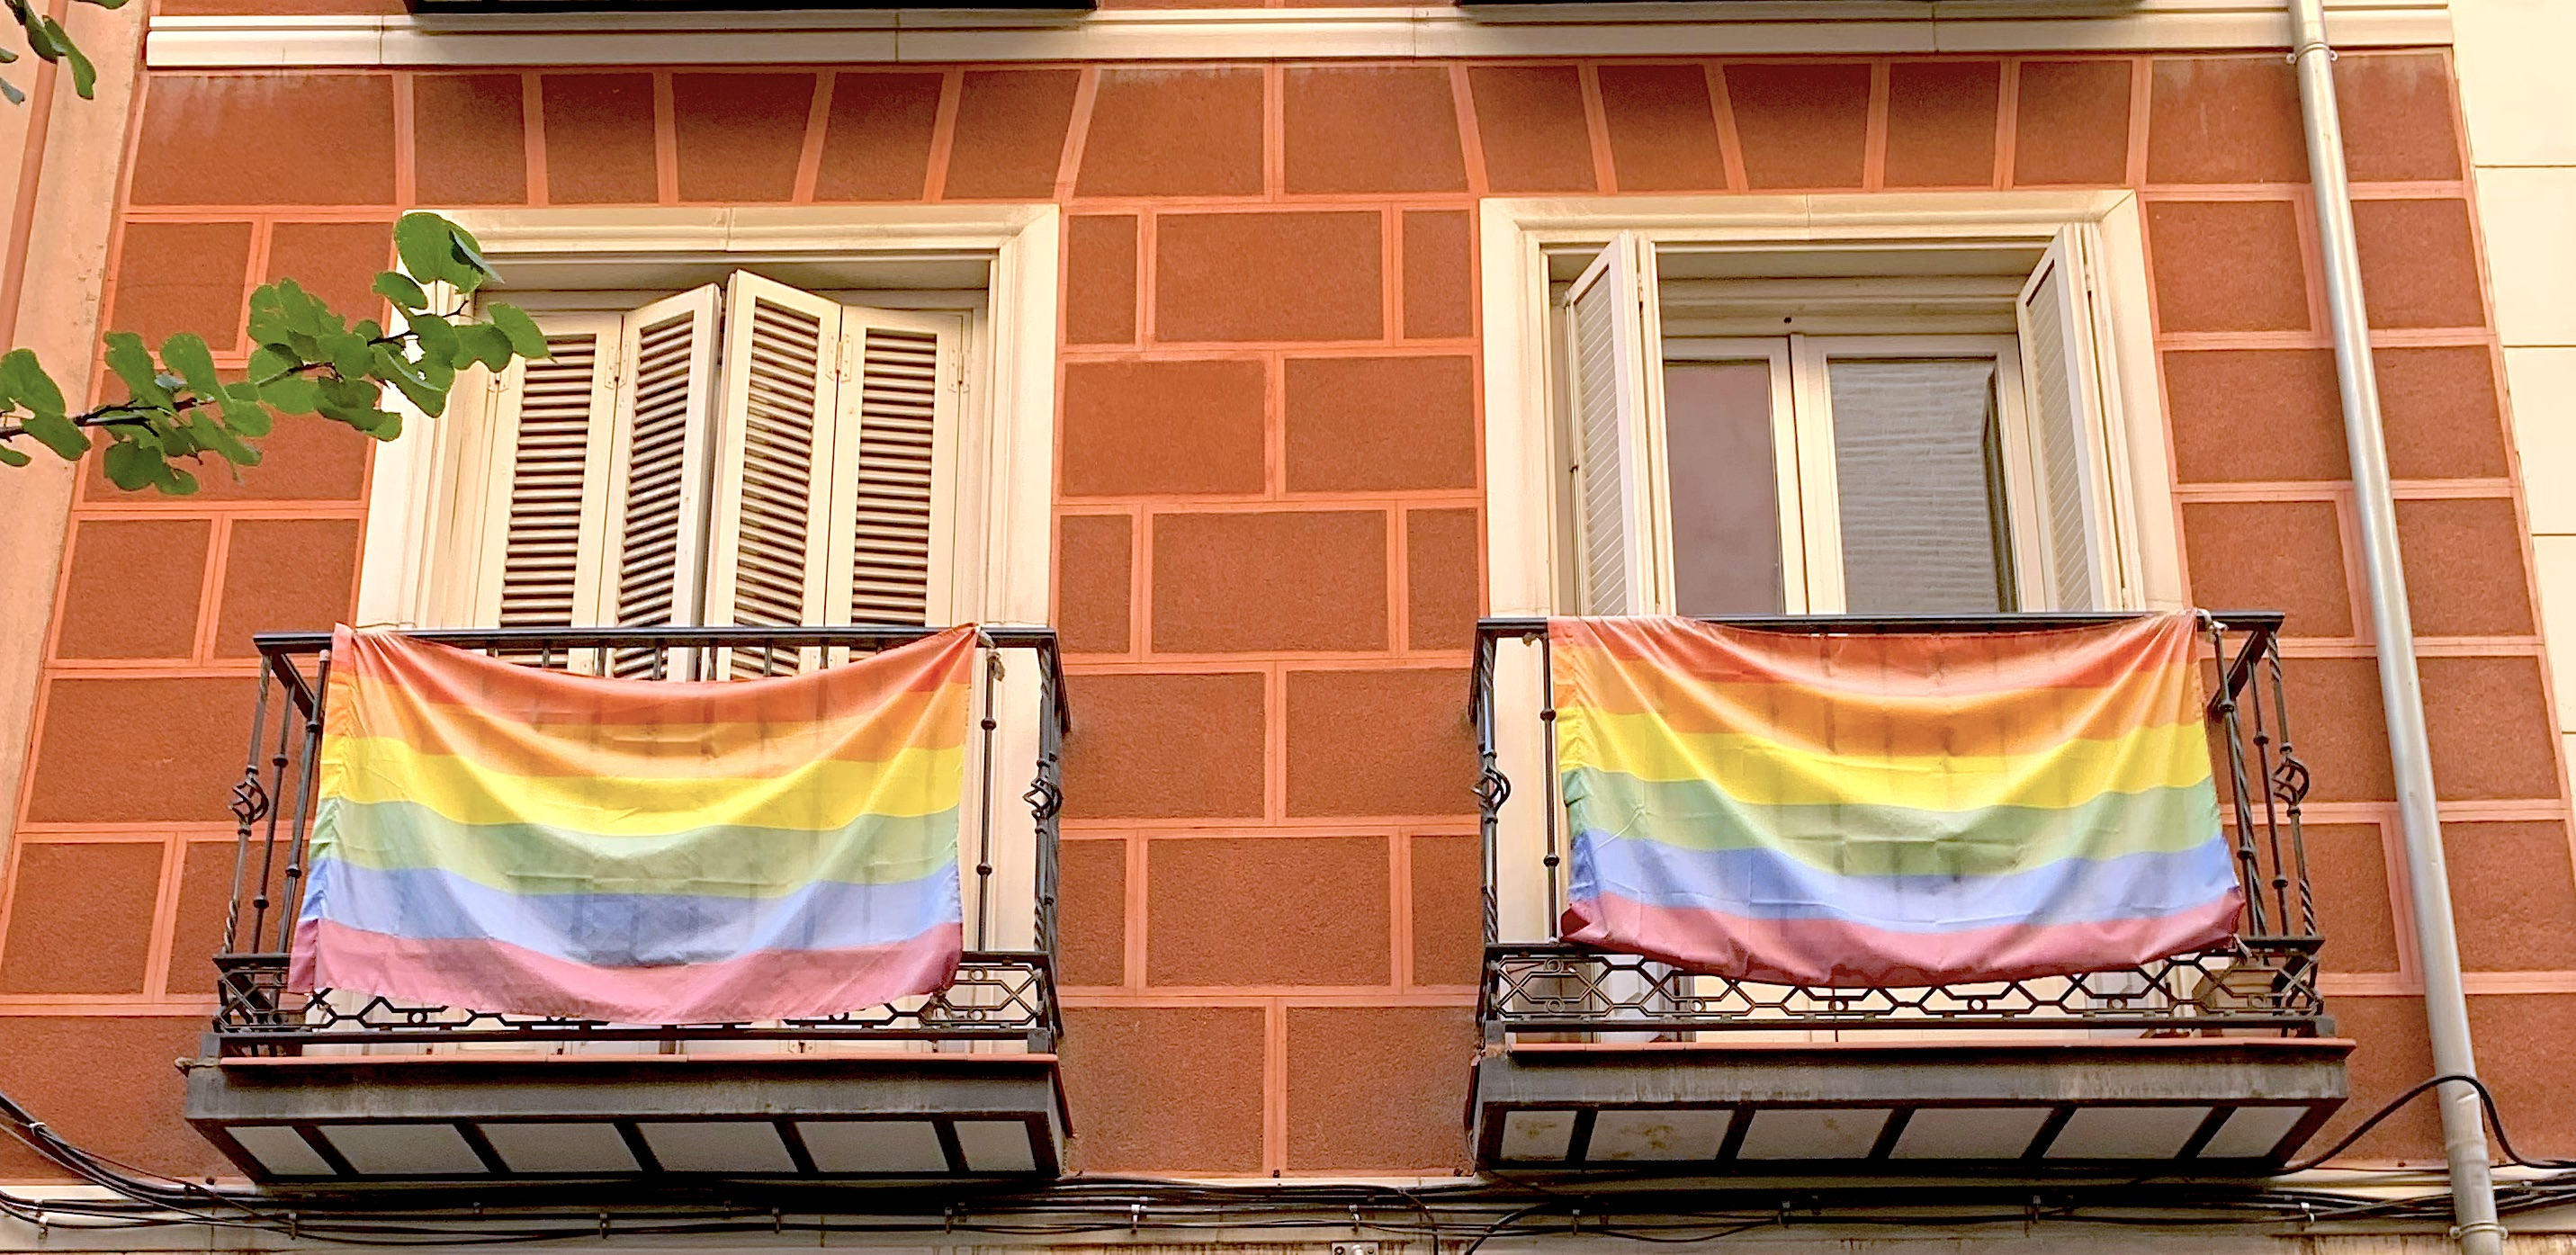 Rainbow flags hang on balconies in Chueca, Madrid